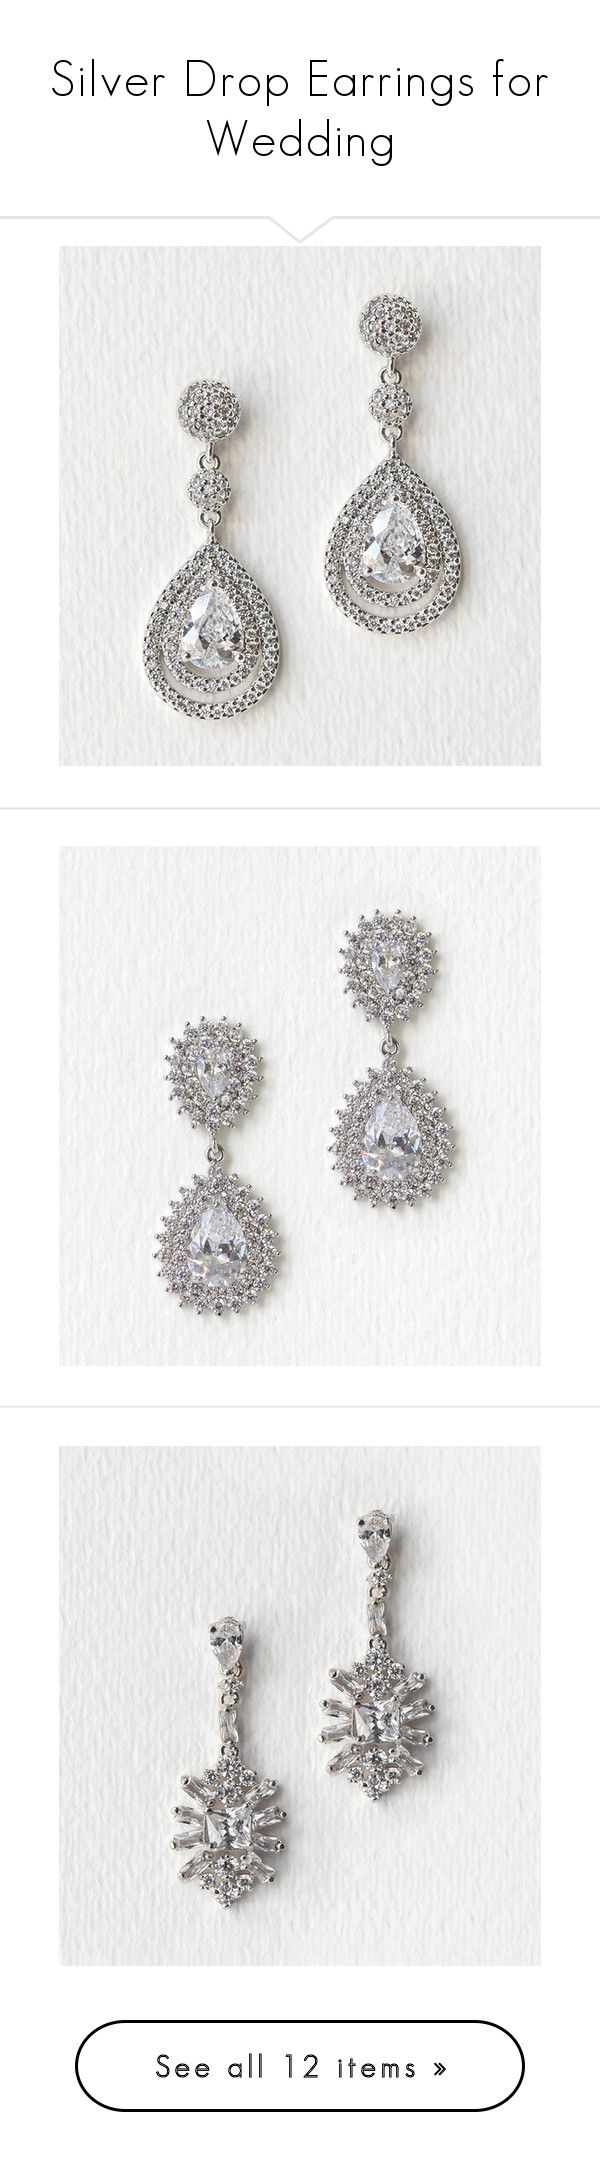 """""""Silver Drop Earrings for Wedding"""" by amyo-bridal ❤ liked on Polyvore featuring Silver, wedding, earrings, accessories, jewelry, bridal statement earrings, silver statement earrings, wedding jewelry, statement earrings and bride earrings"""